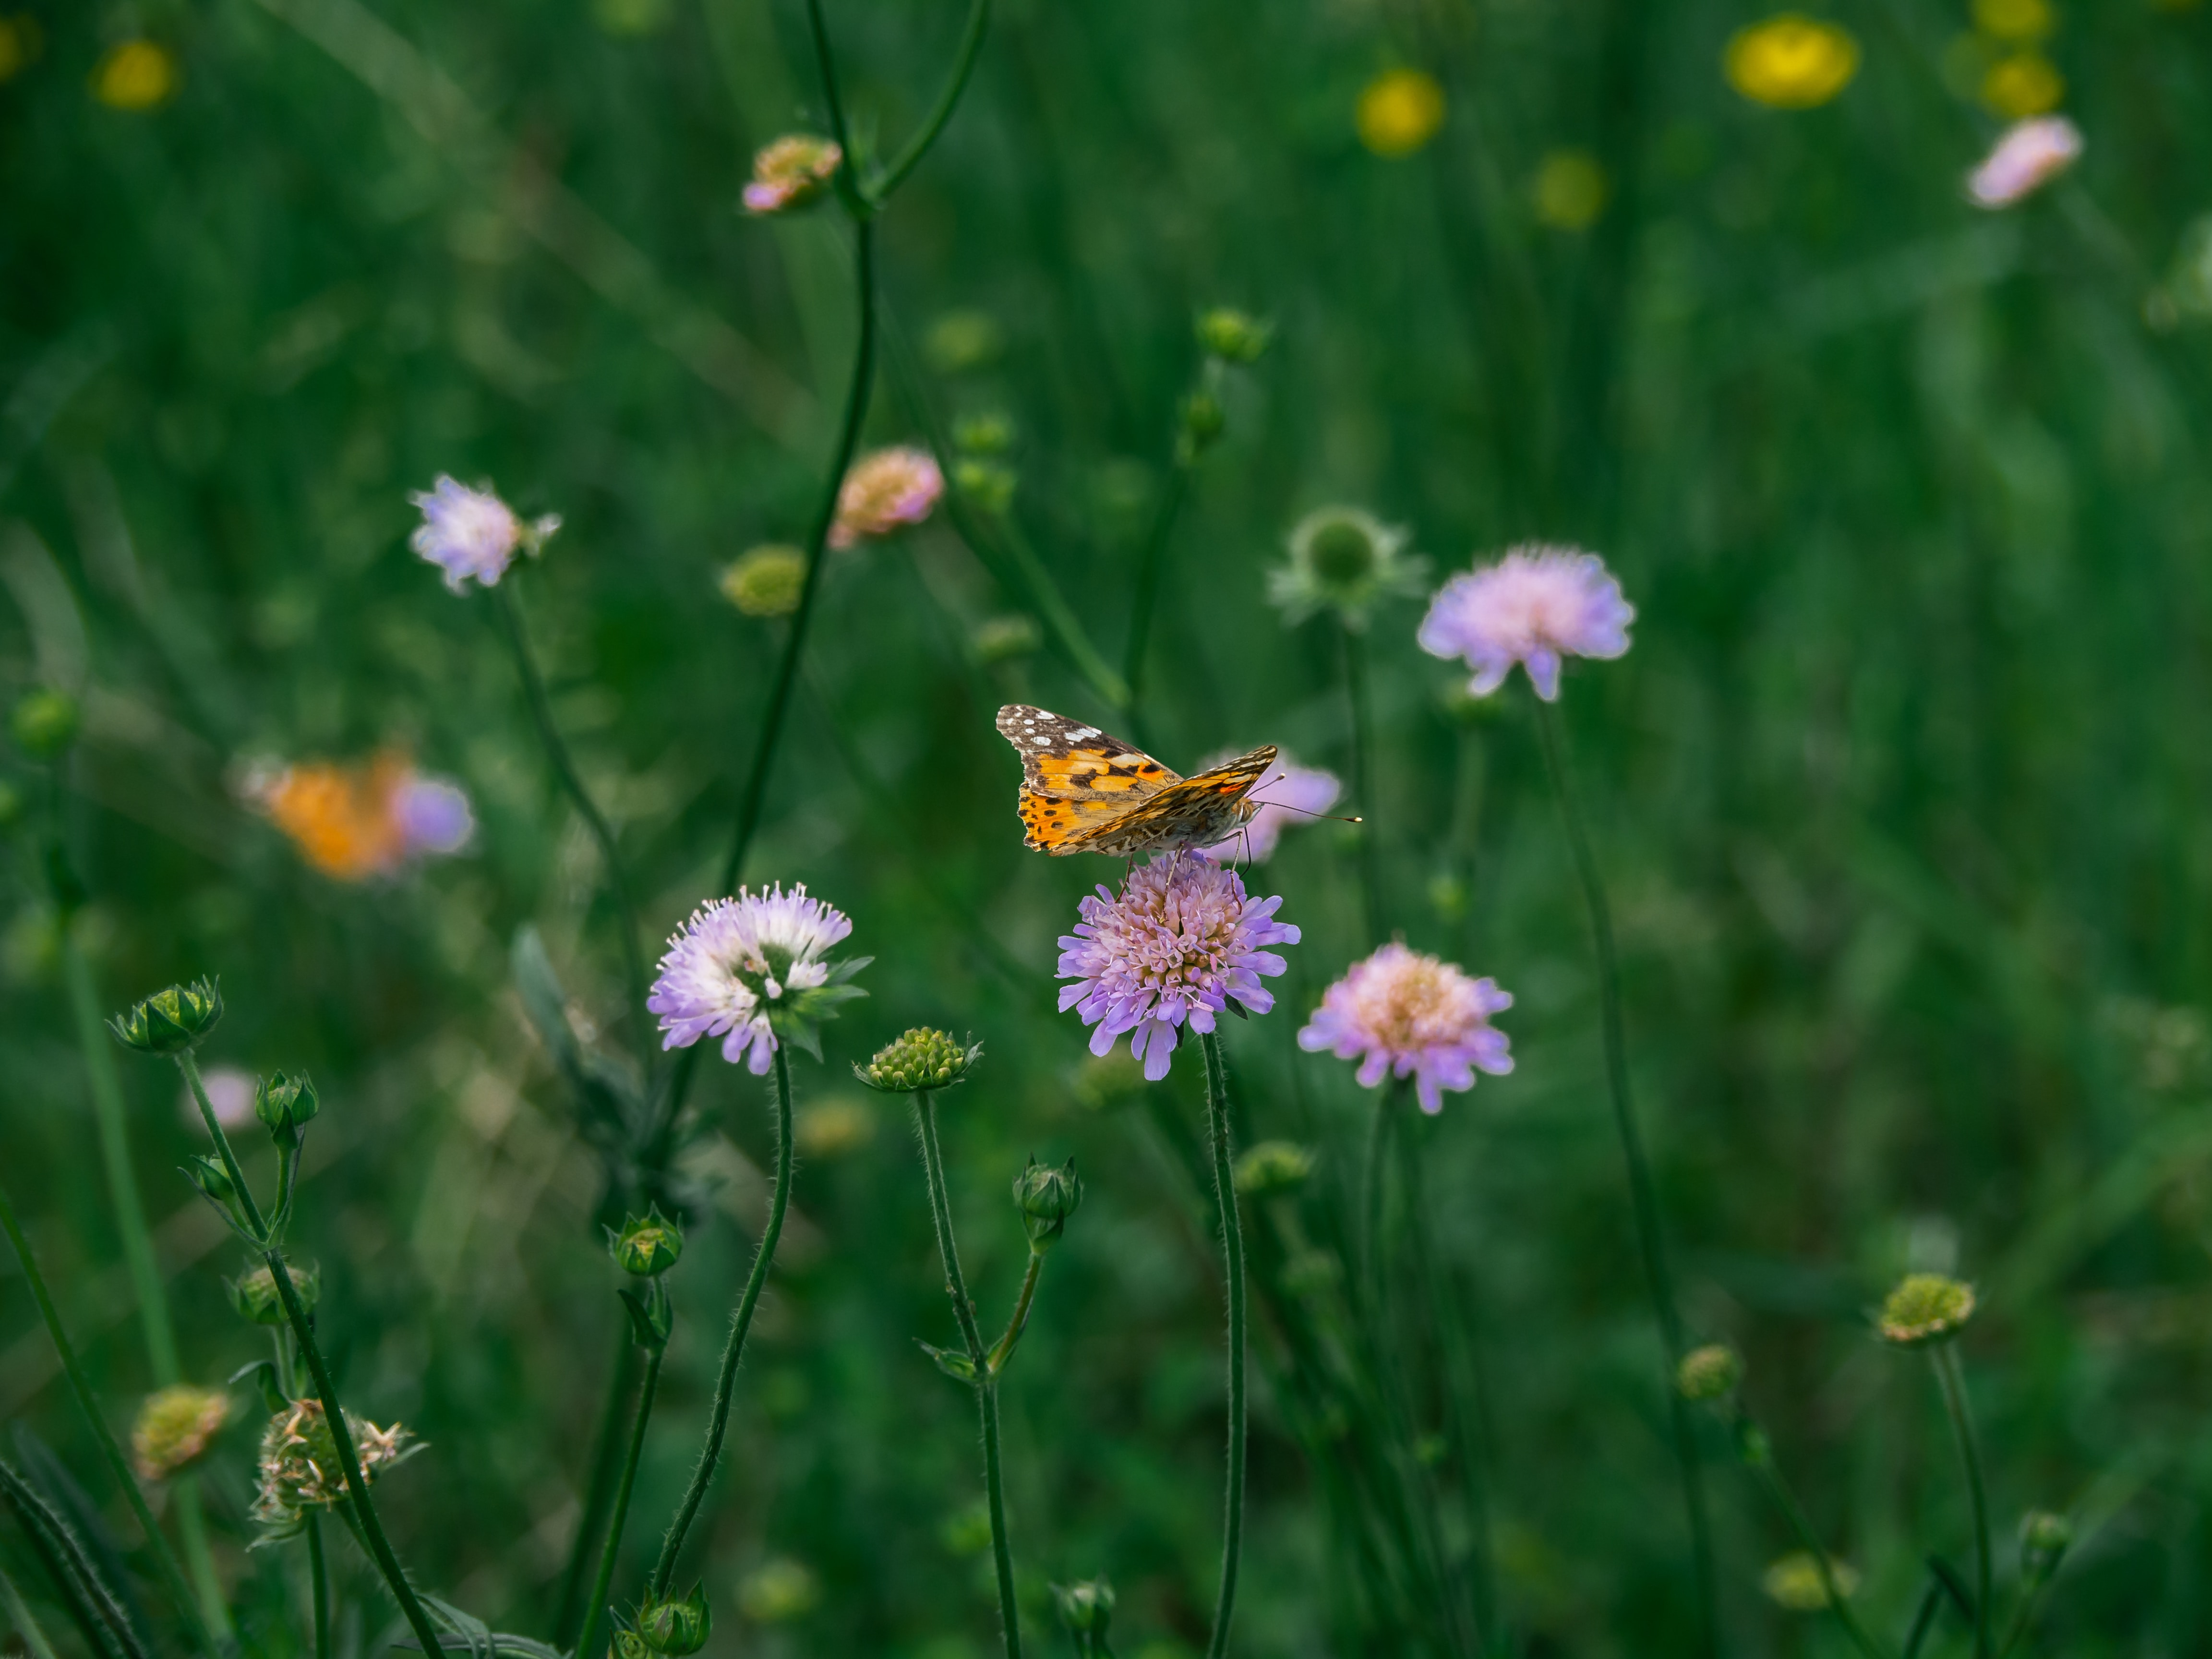 flowers in field with close-up of butterfly